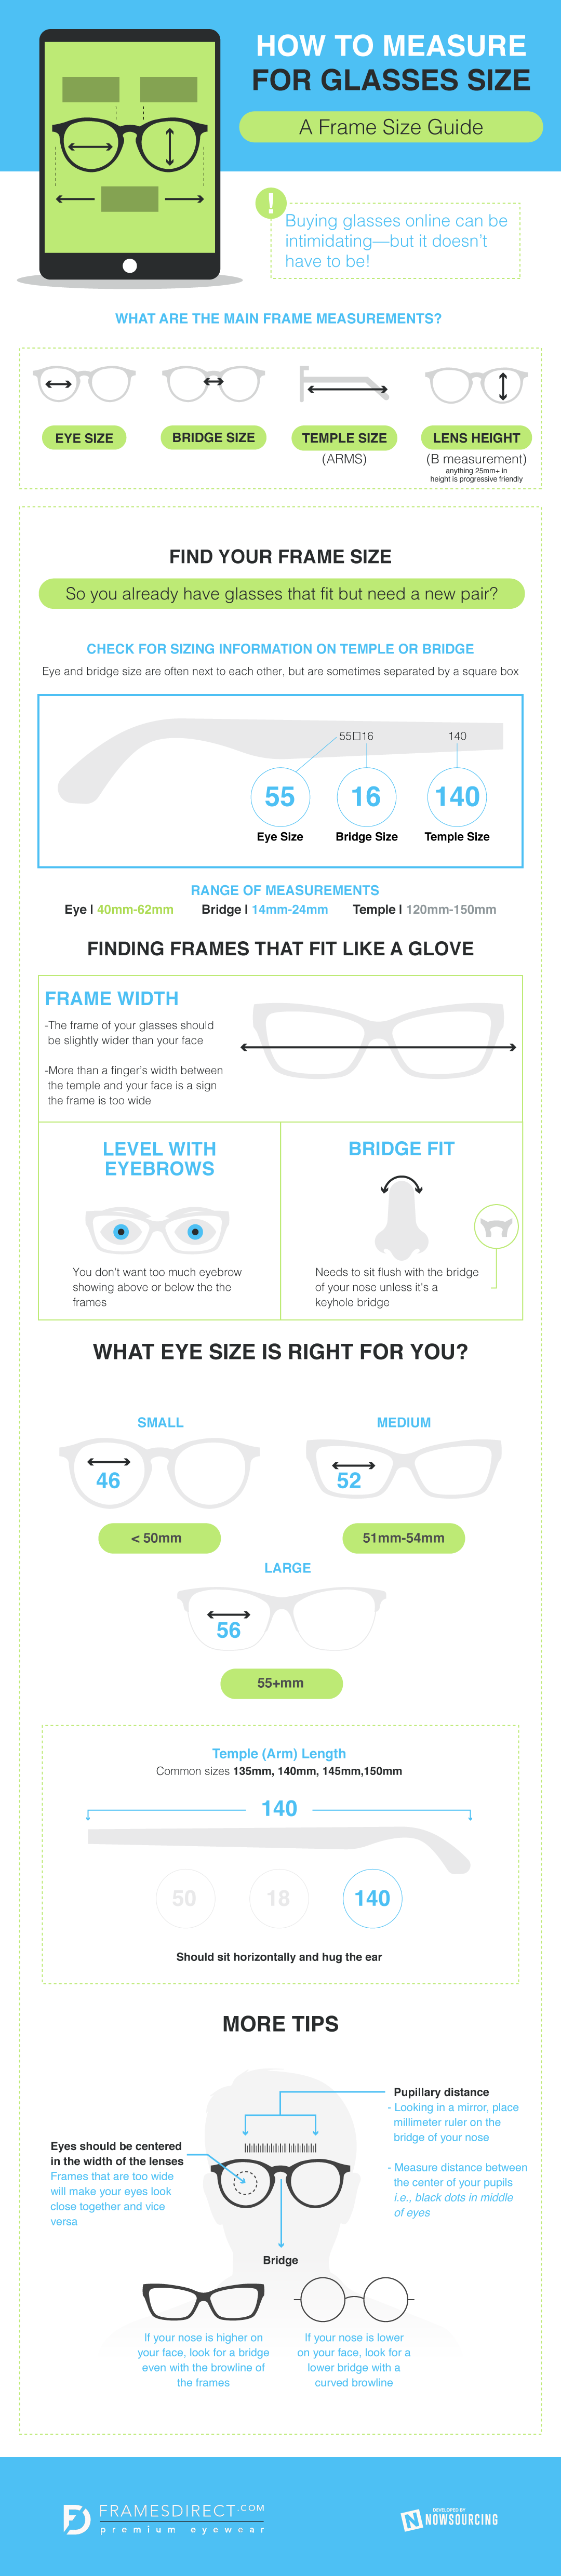 How To Measure For Glasses Size